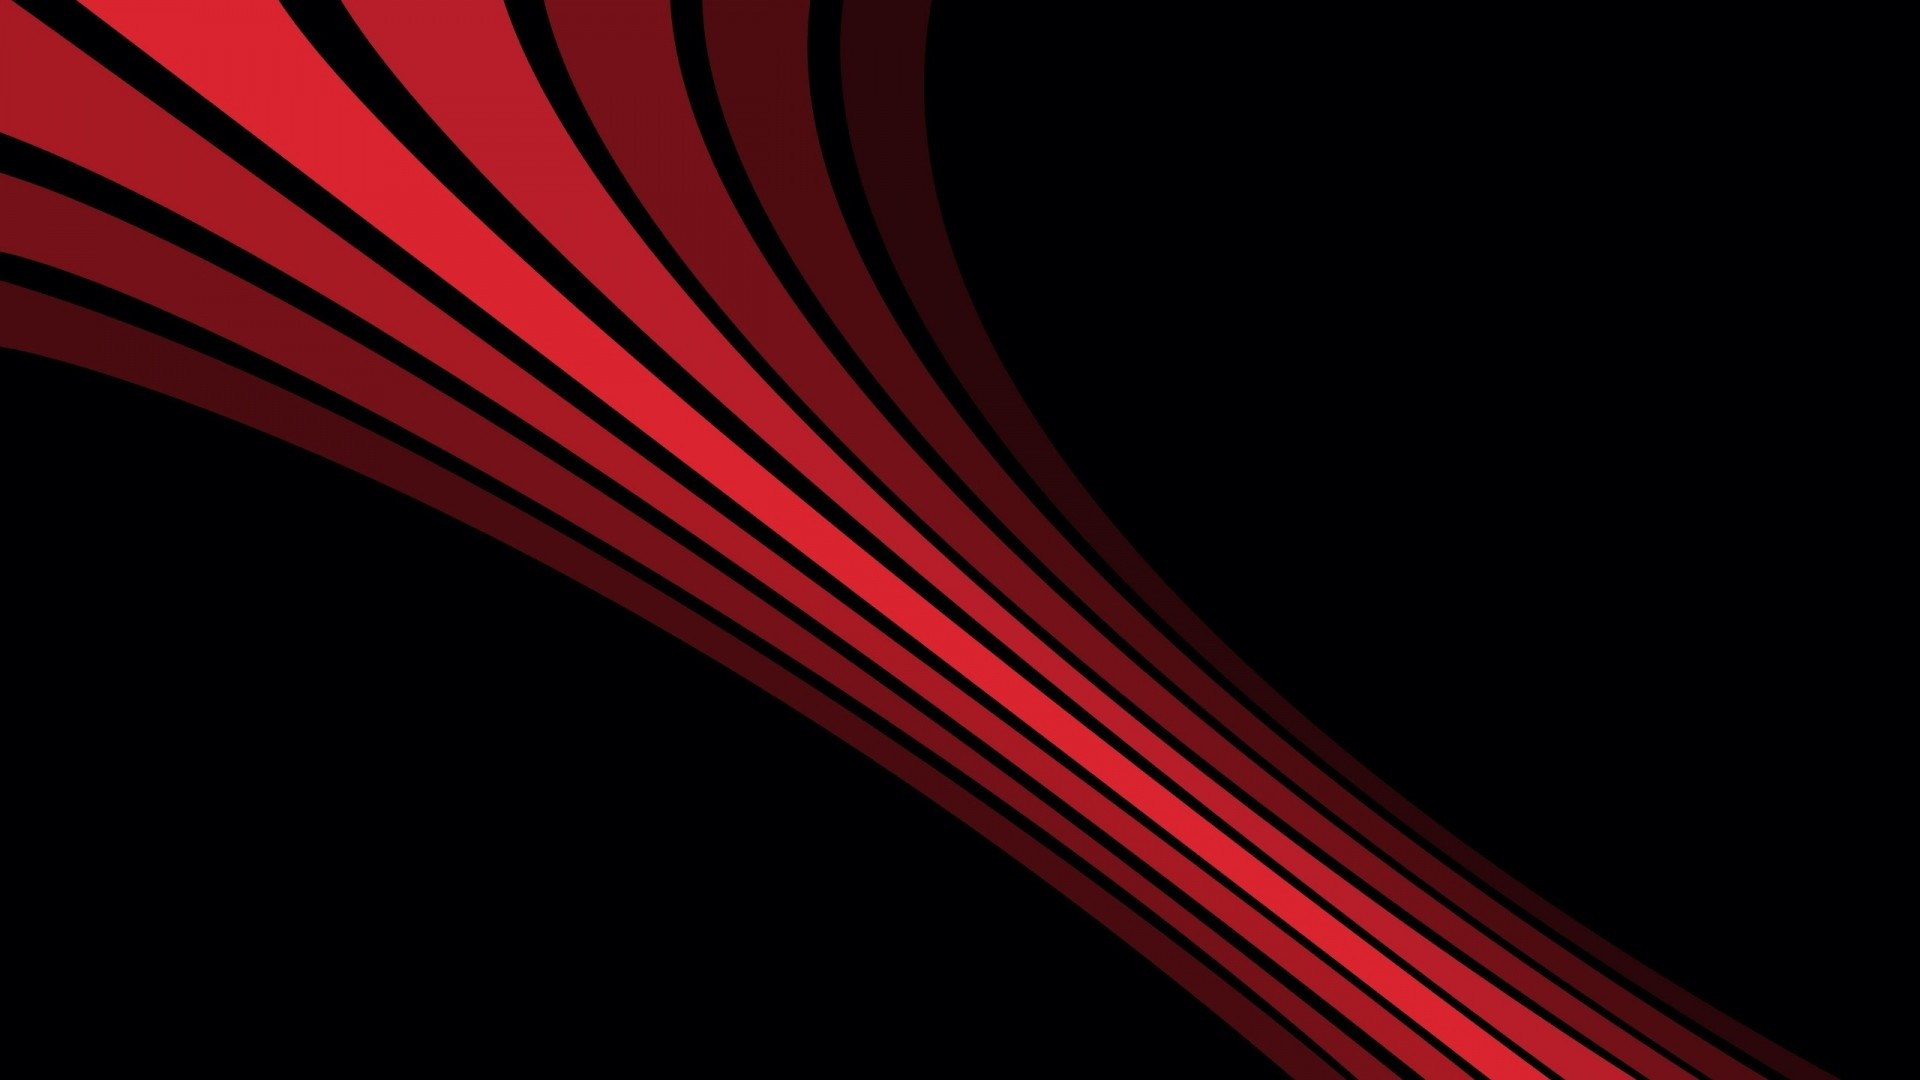 Black and Red 1080p Wallpaper (68+ images)